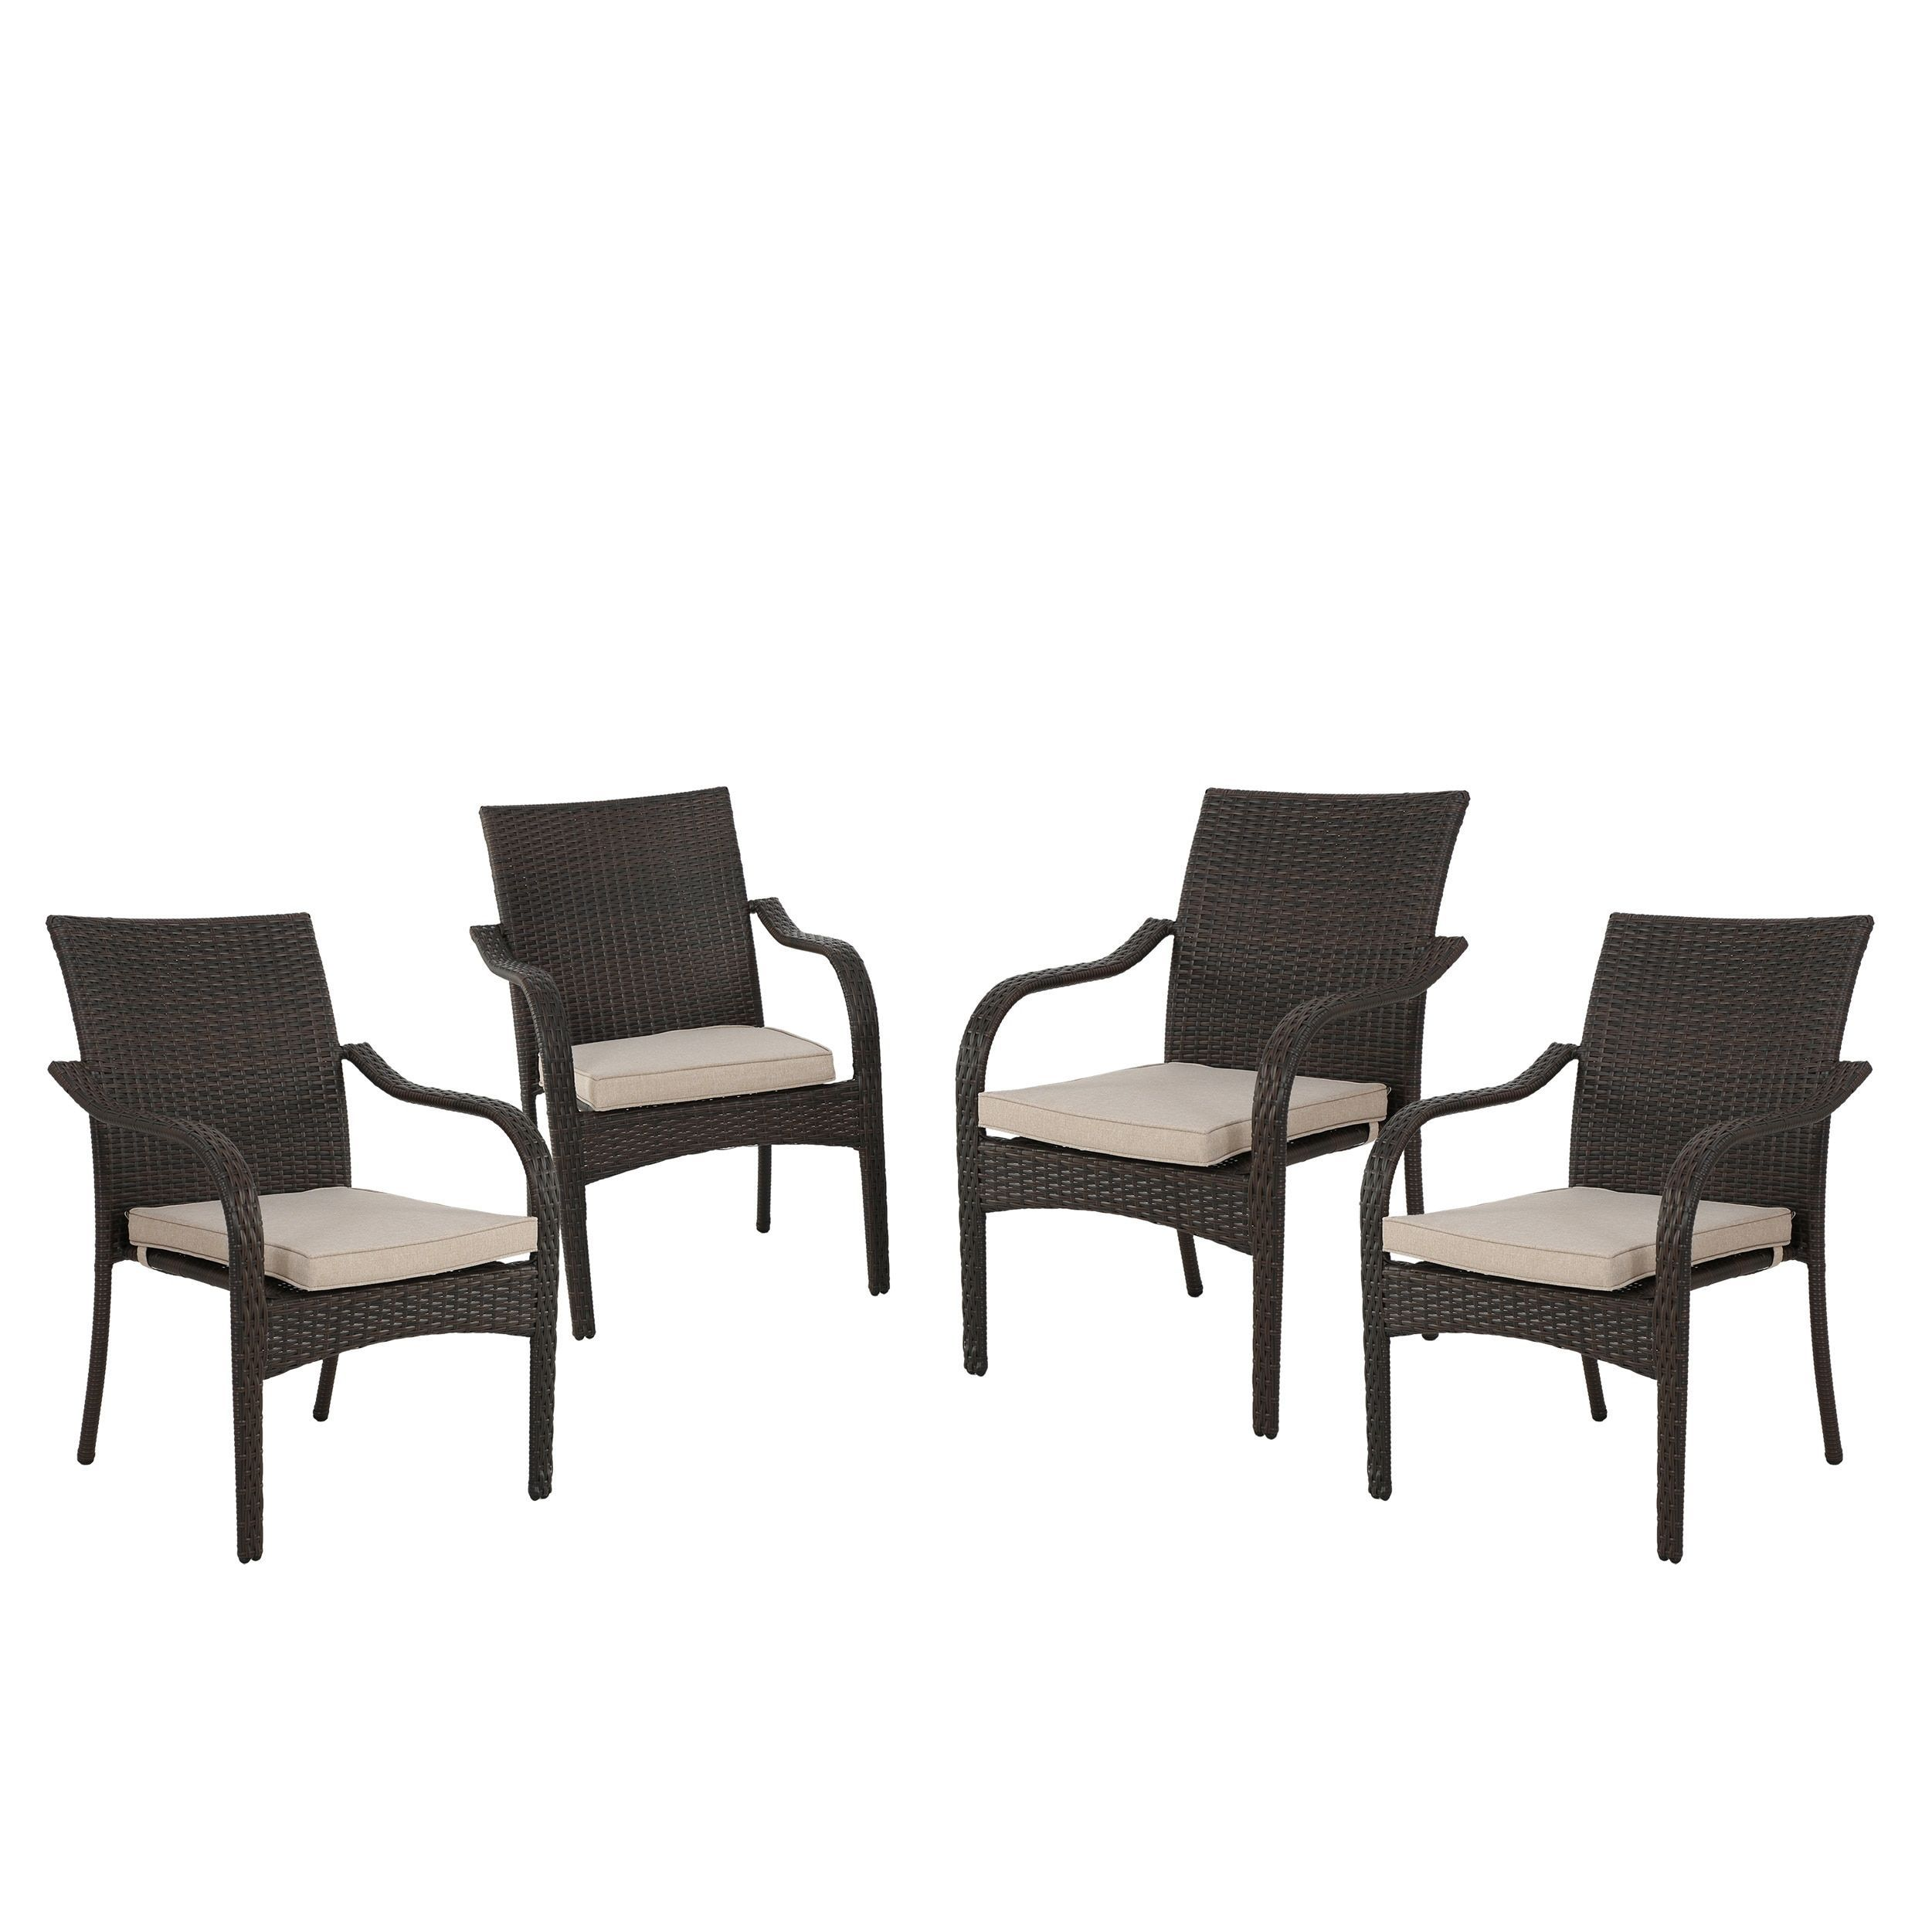 San Pico Outdoor Wicker Stacking Chairs